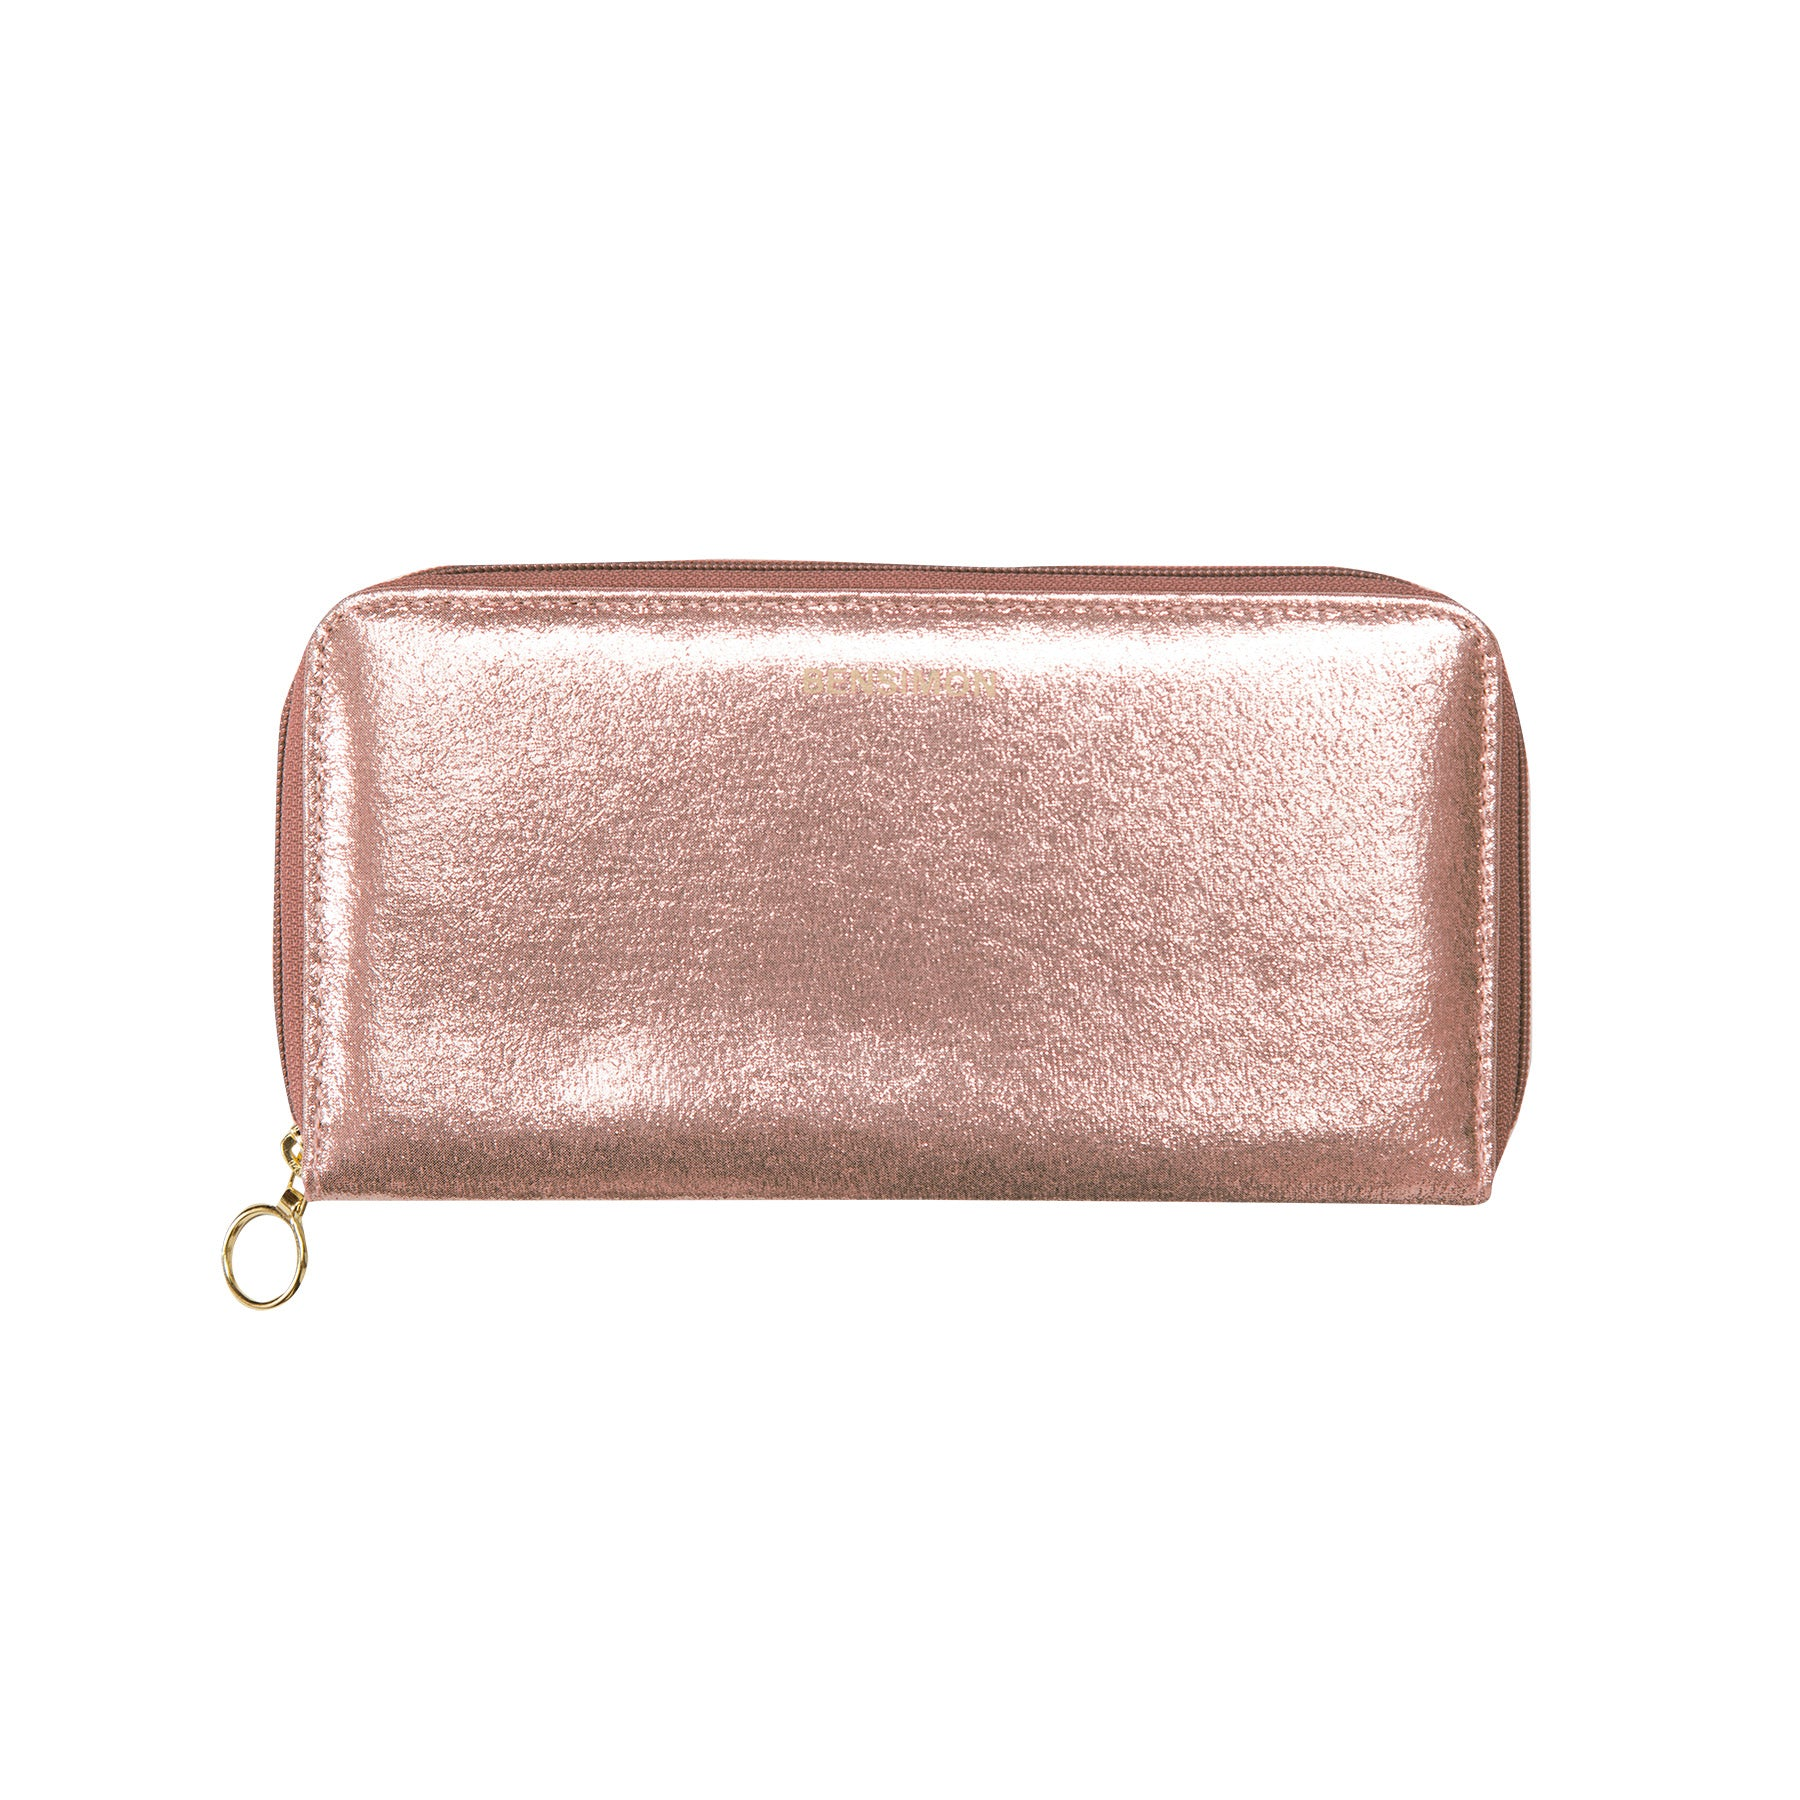 Zipped Wallet - Rose